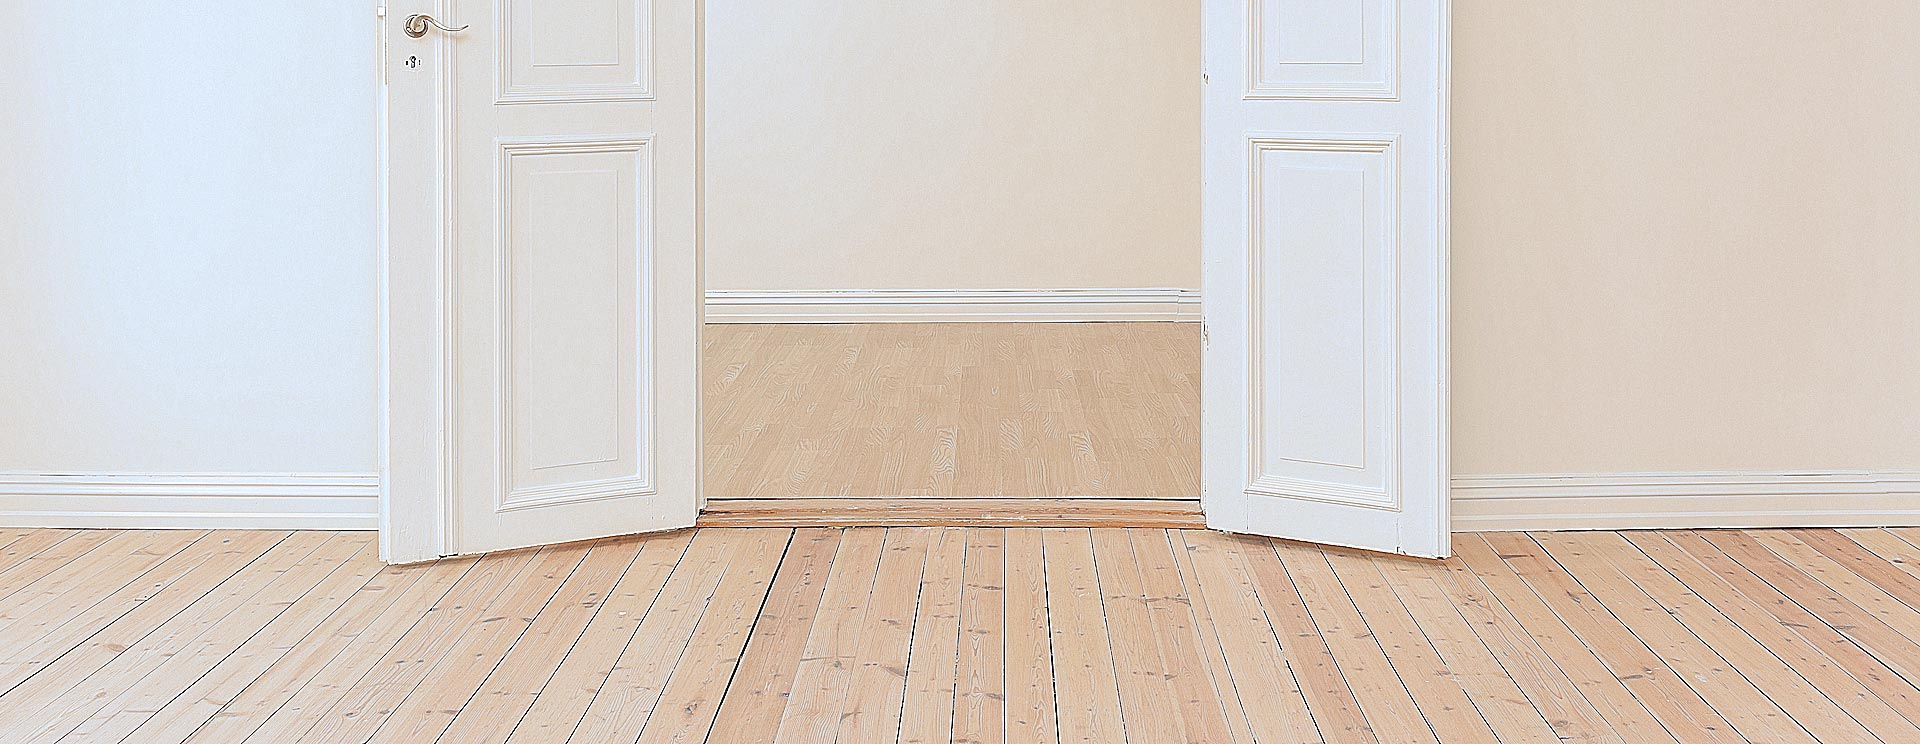 An unoccupied property with wooden floors